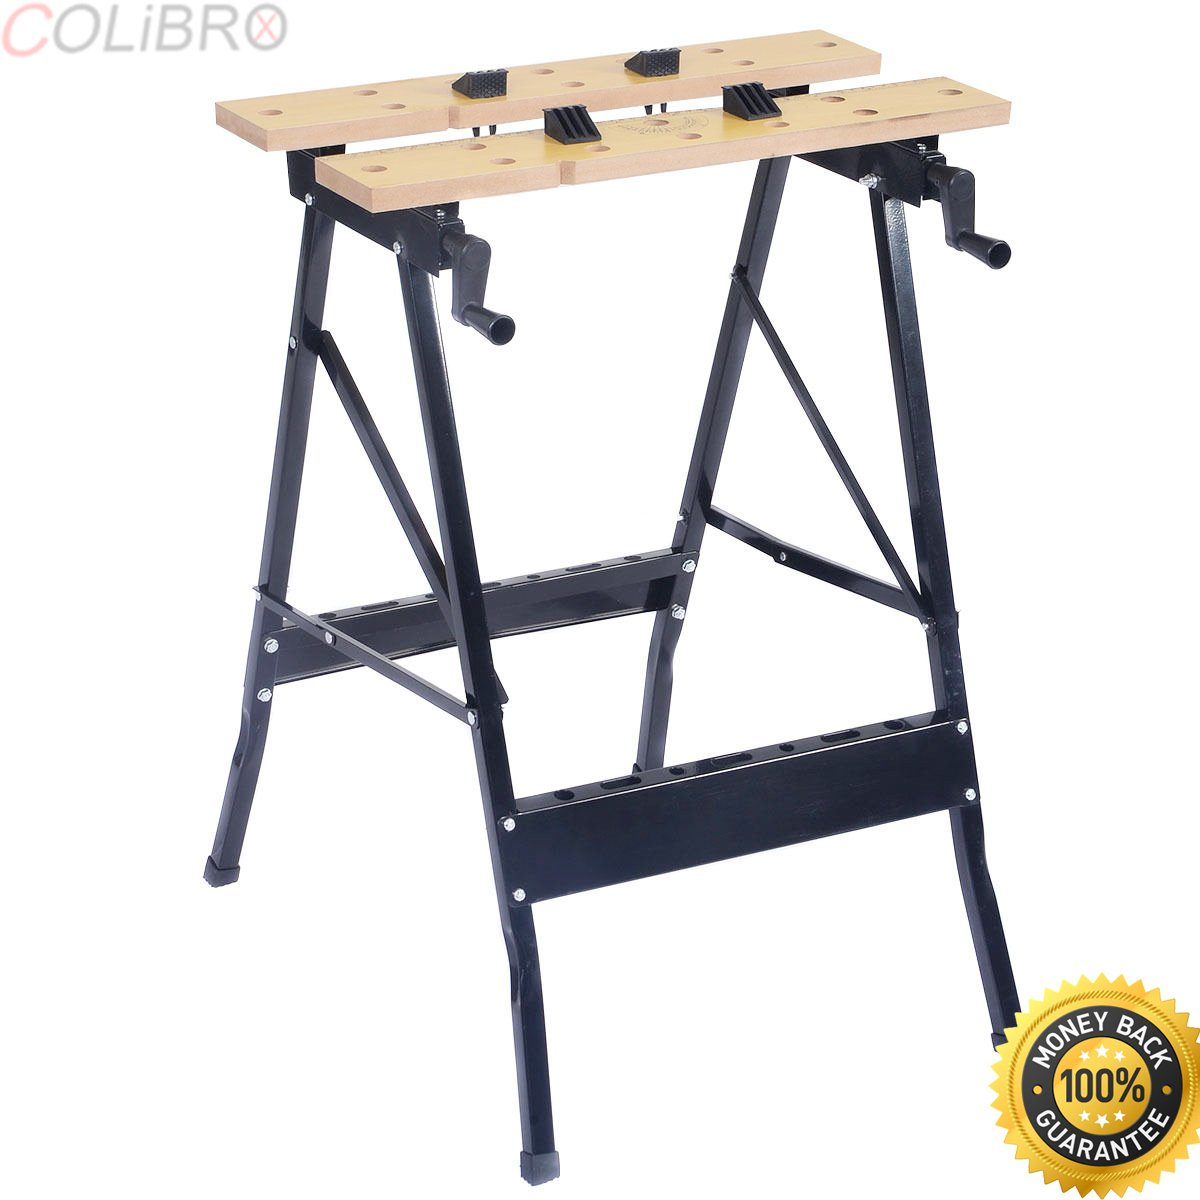 COLIBROX--Folding Portable Work Bench Table Tool Garage Repair Workshop 350lb Capacity. work table home depot. portable work tables. portable work table home depot. portable folding workbench amazon.